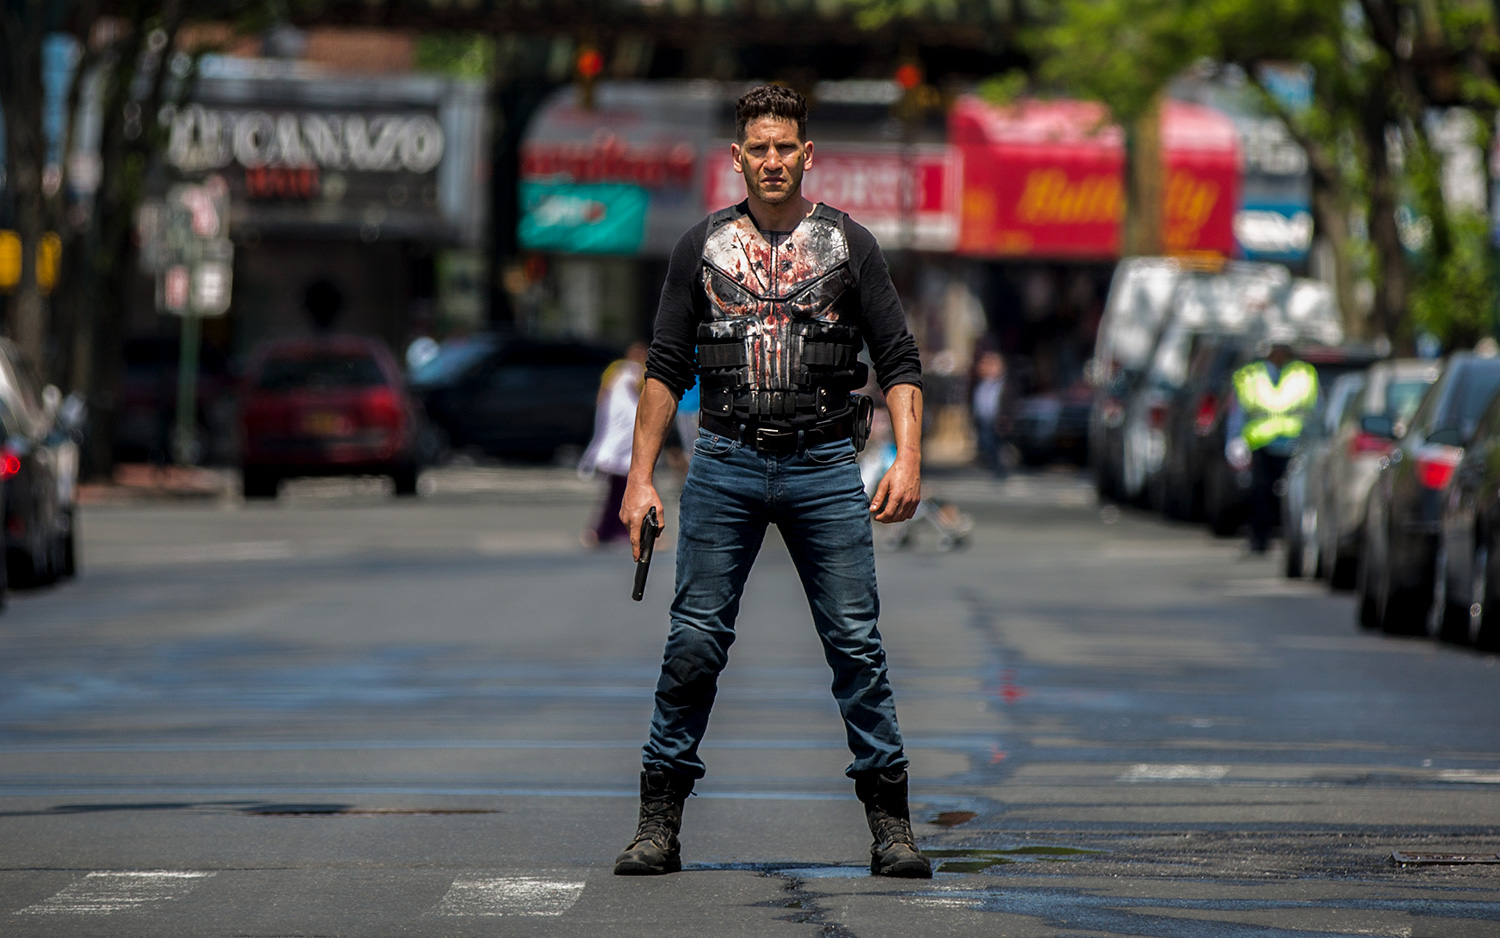 13 Games to Play After Watching The Punisher Season 2 | Tom's Guide